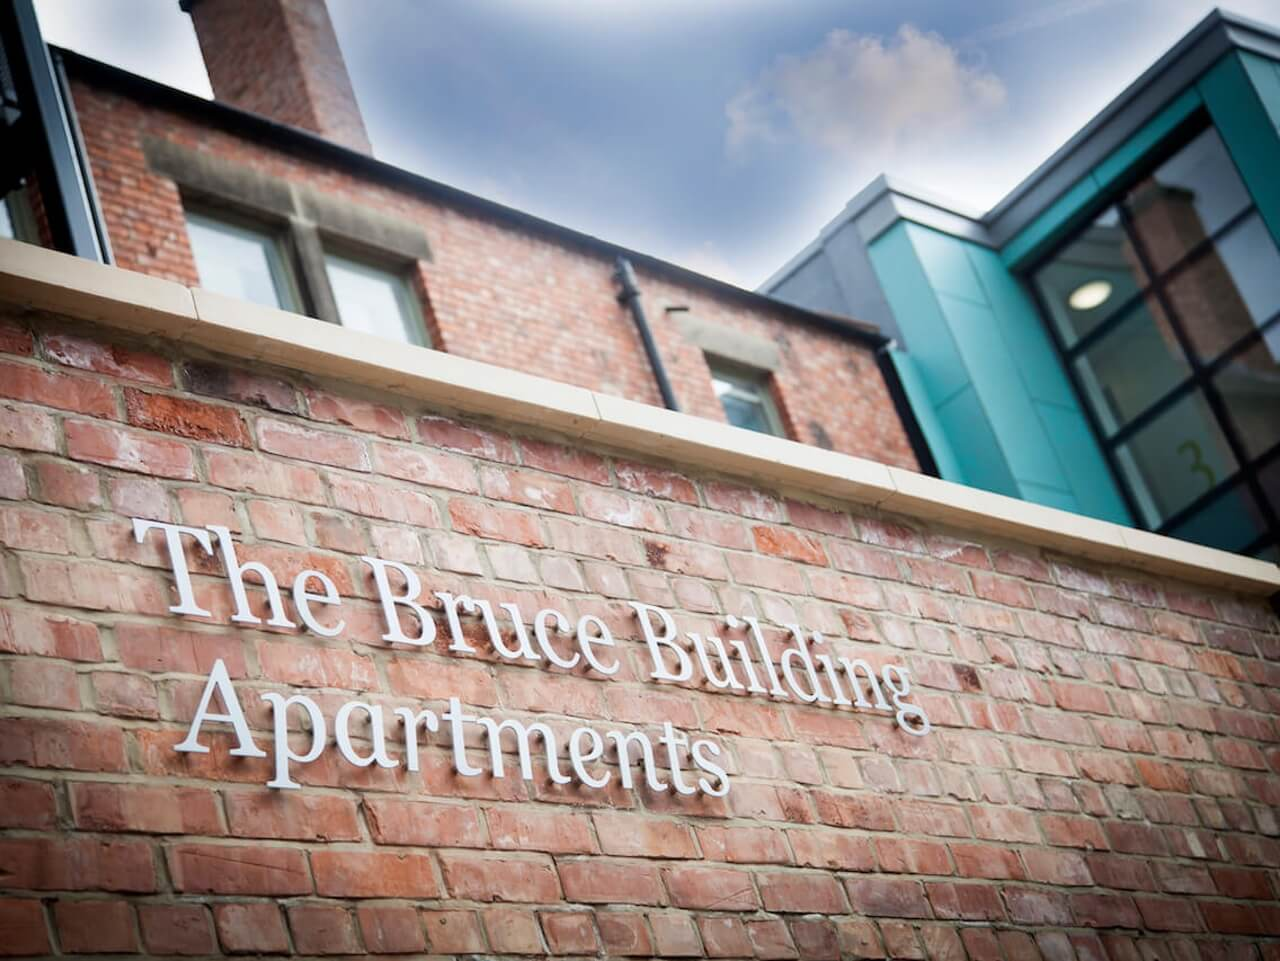 The Bruce Building Apartments name sign on an external brick wall in white letters